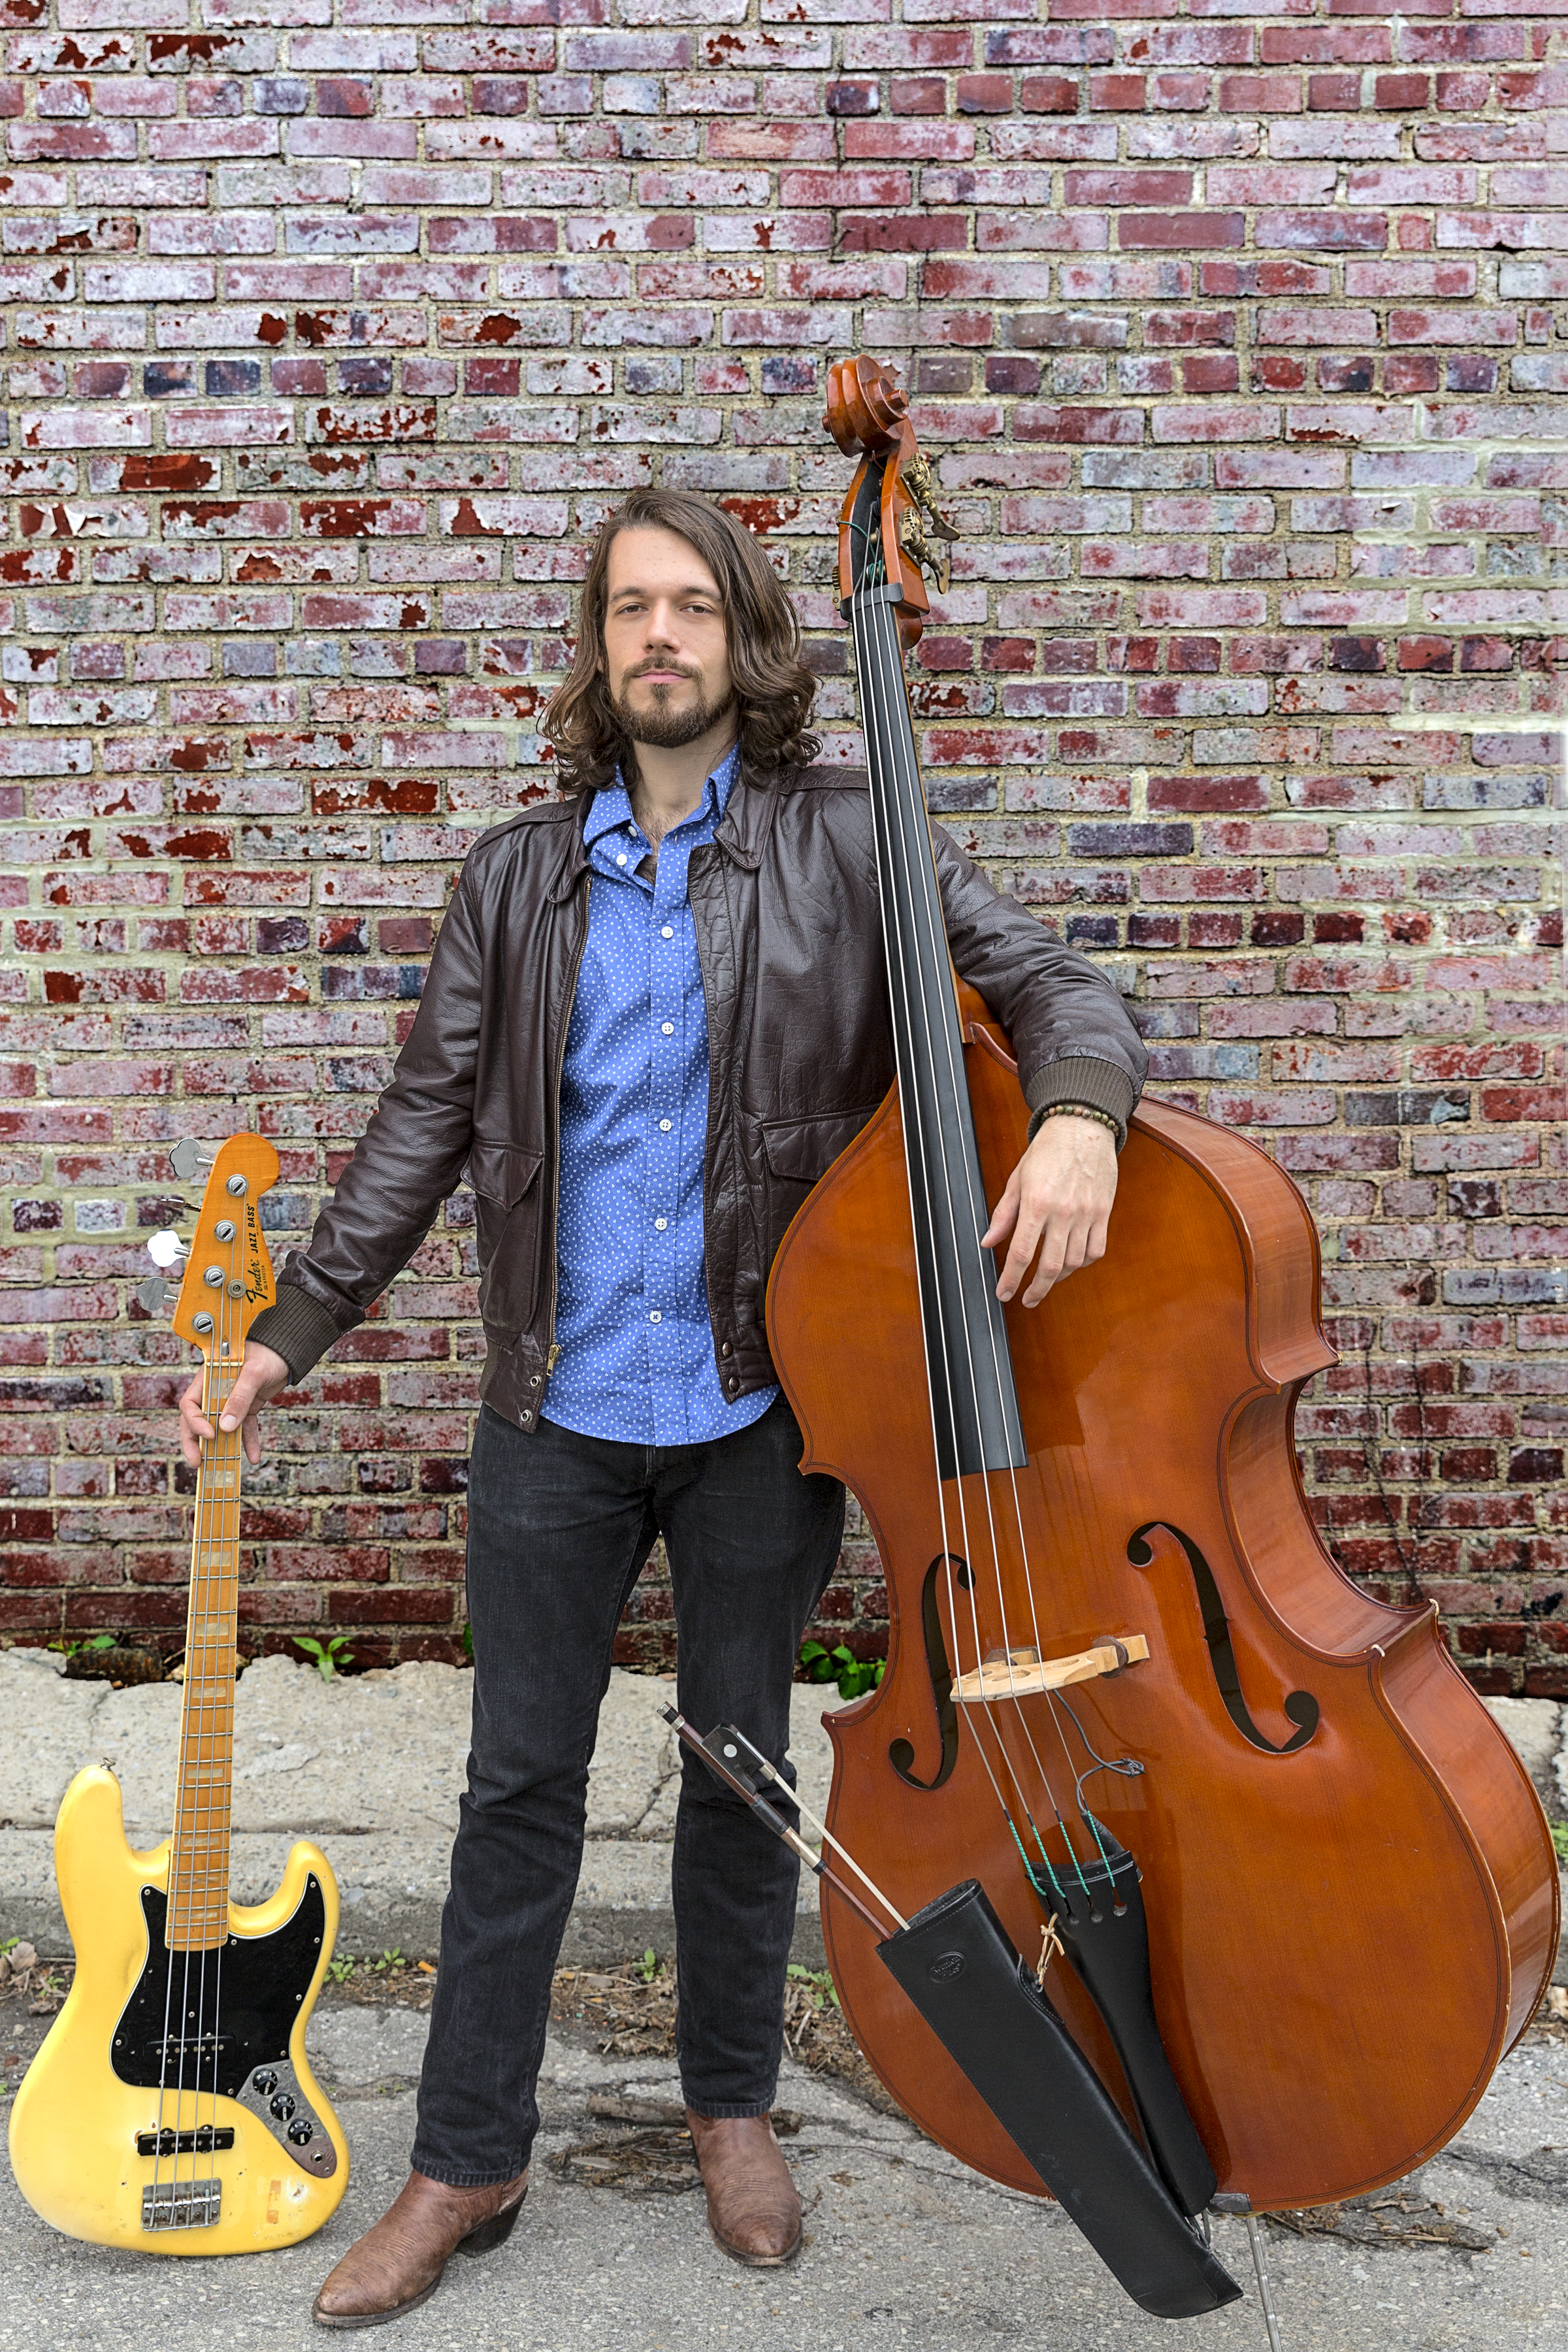 Seth Barden plays upright and electric bass